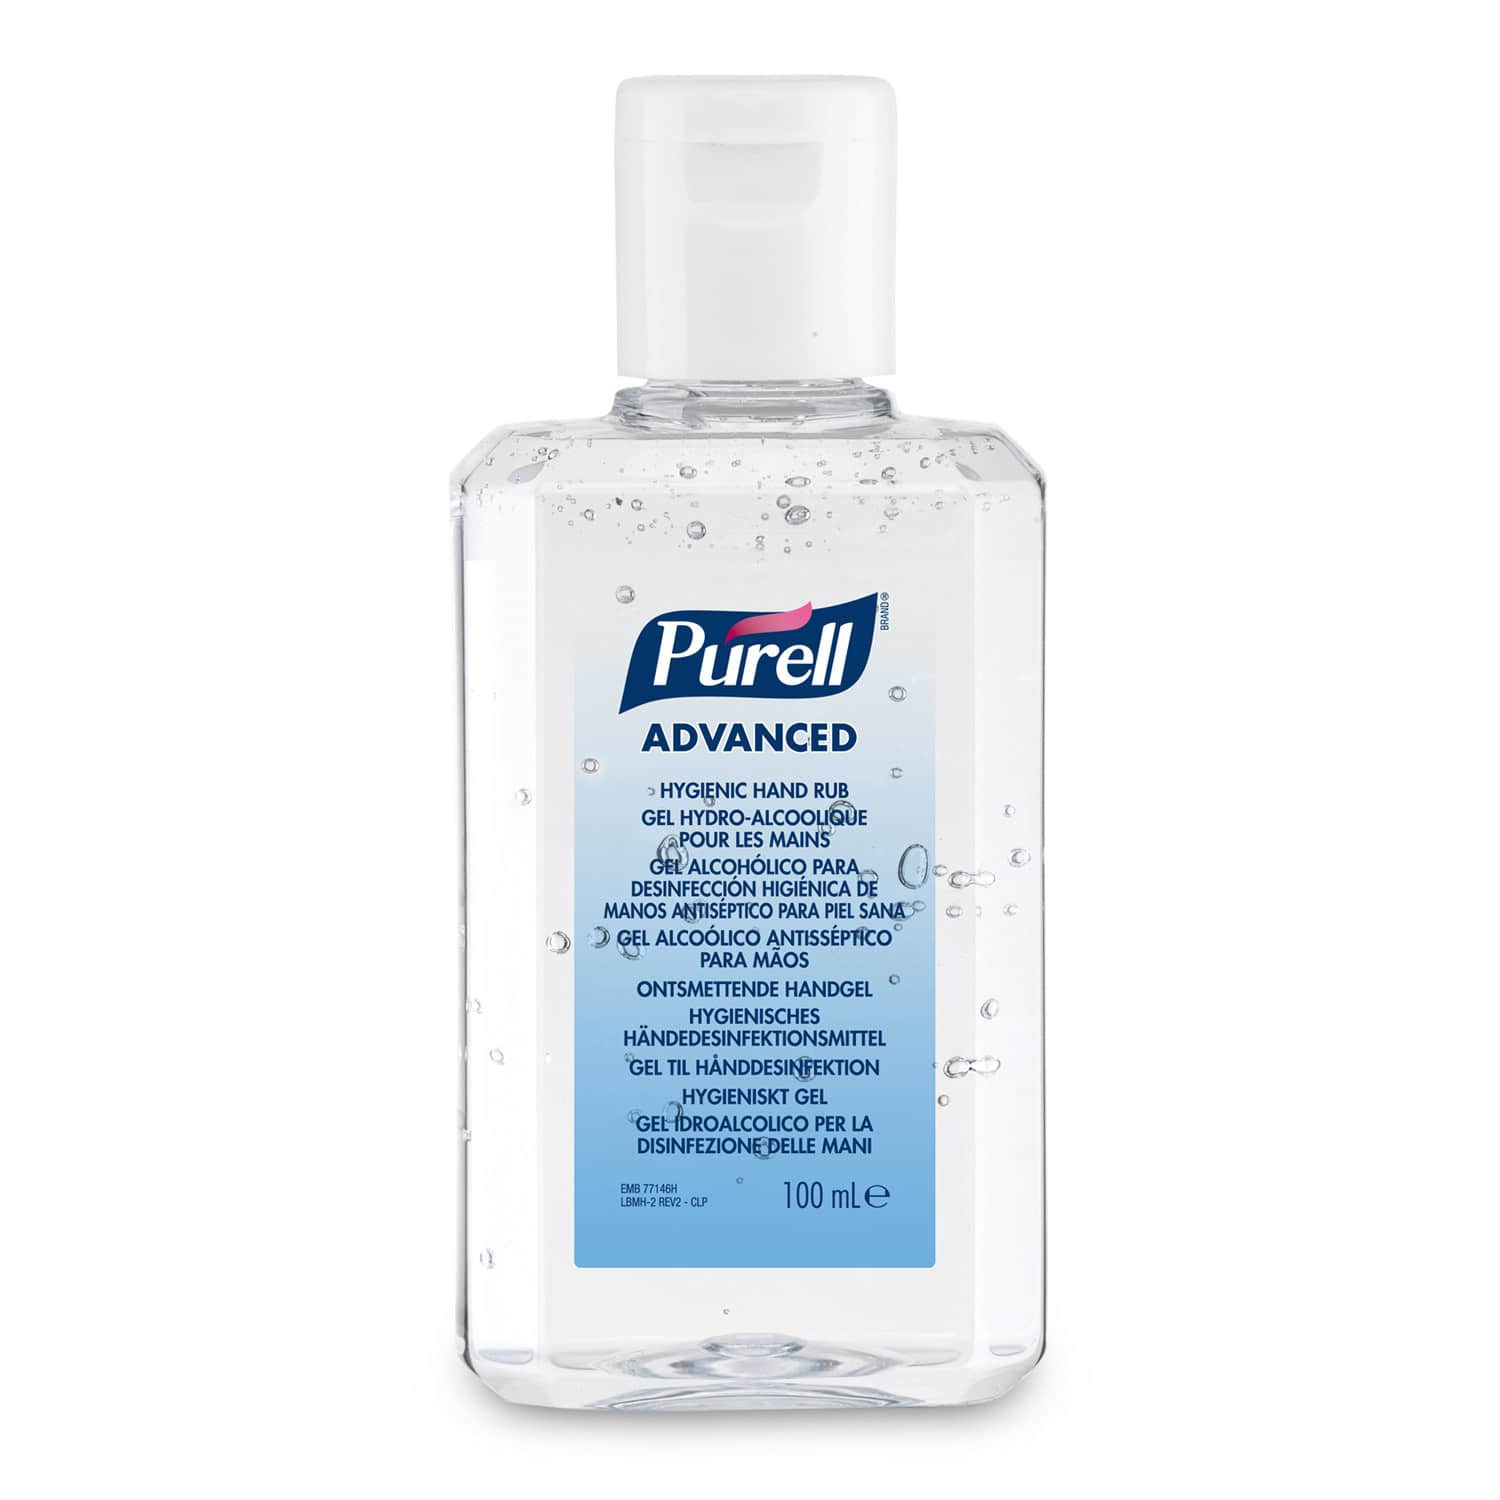 https://static.praxisdienst.com/out/pictures/generated/product/1/1500_1500_100/138509_purell_advanced_haendedesinfektion_100ml_2.jpg